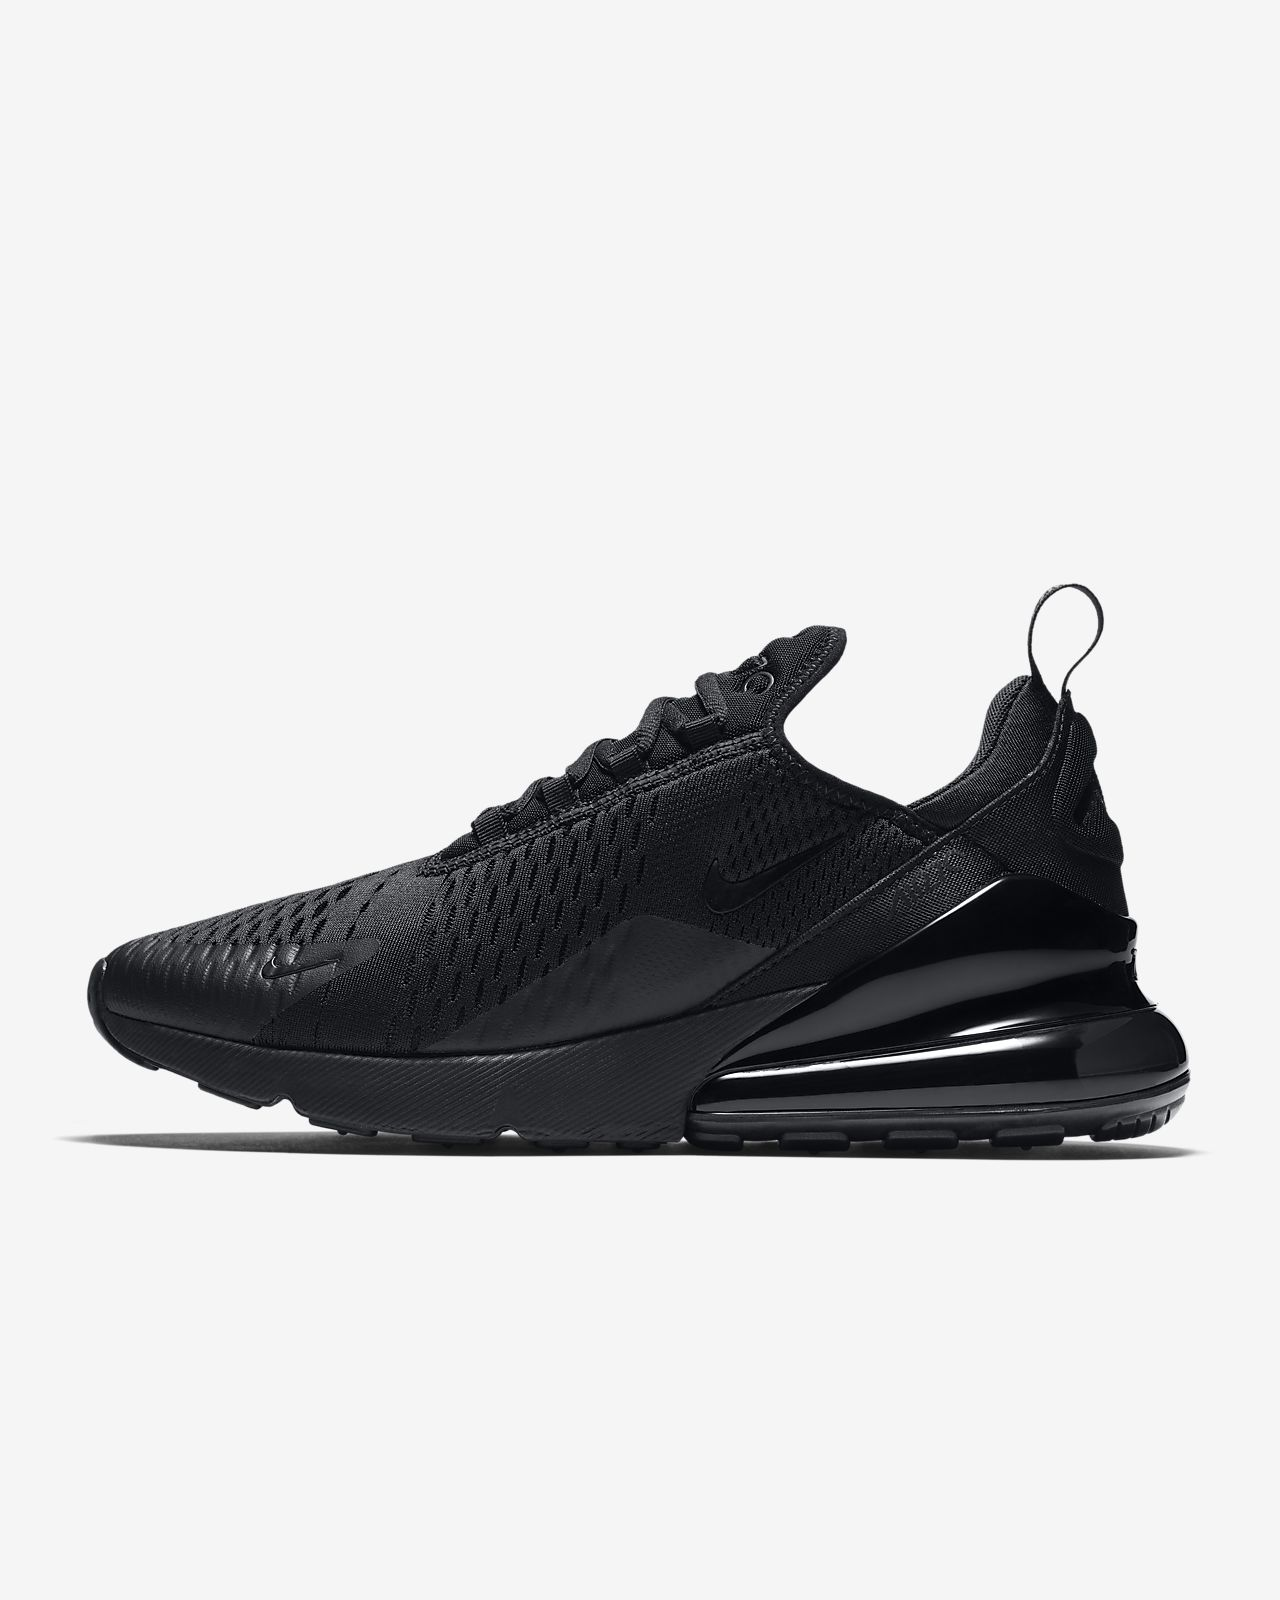 meet 986bc 32700 Men s Shoe. Nike Air Max 270